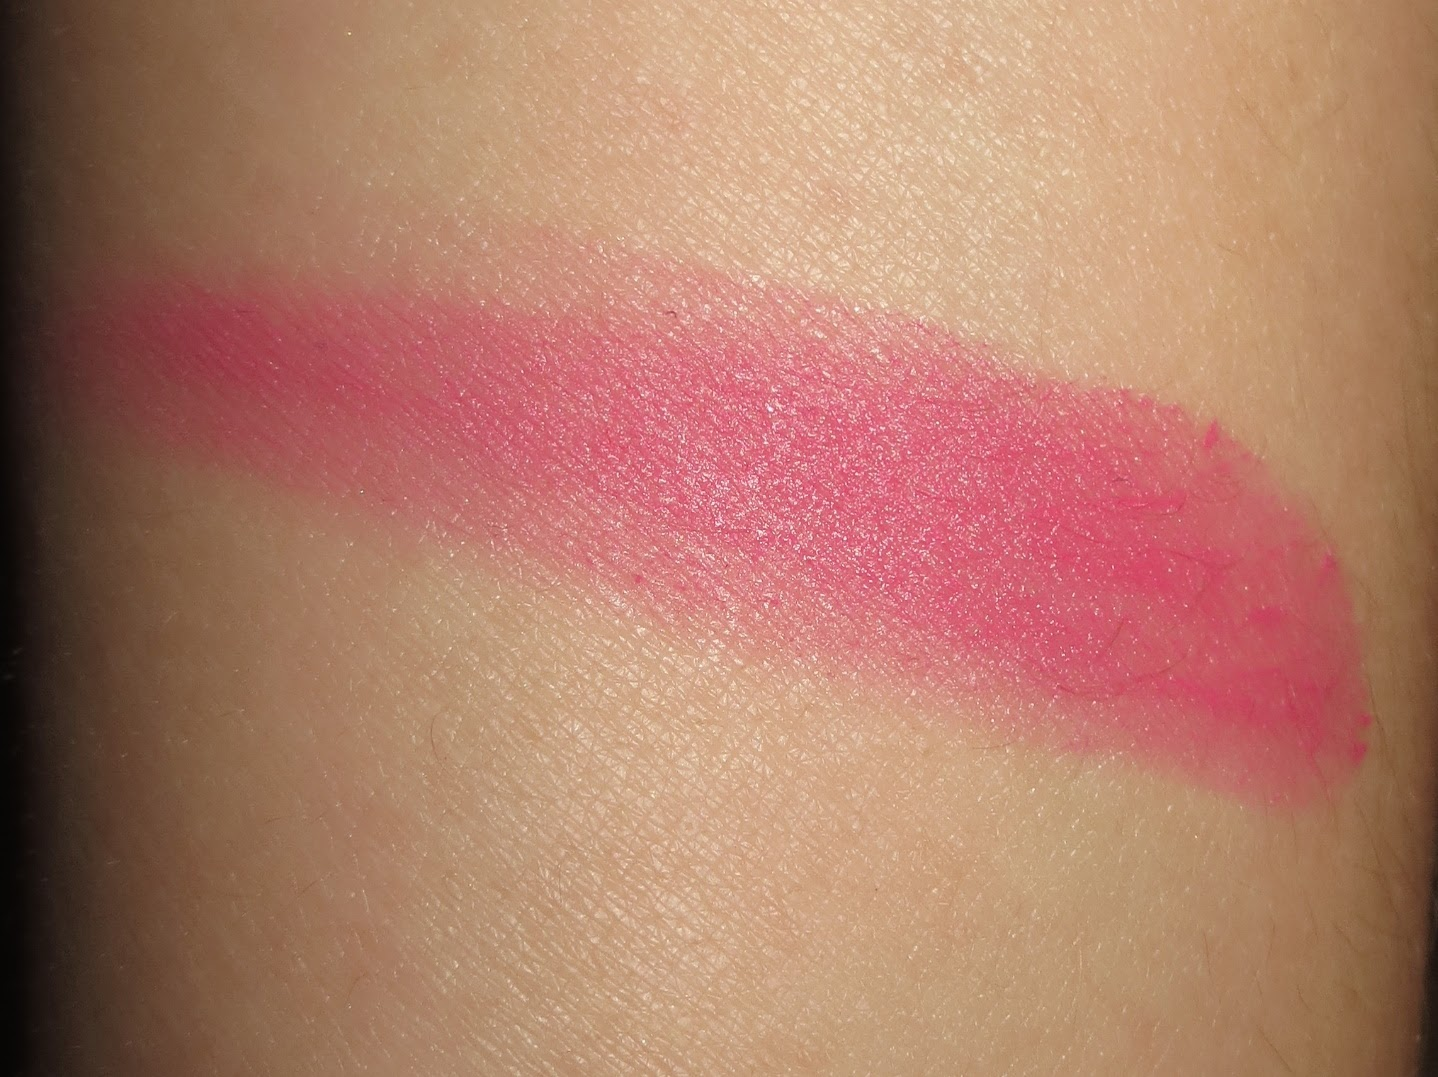 Revlon Cream Blush in Flushed swatch